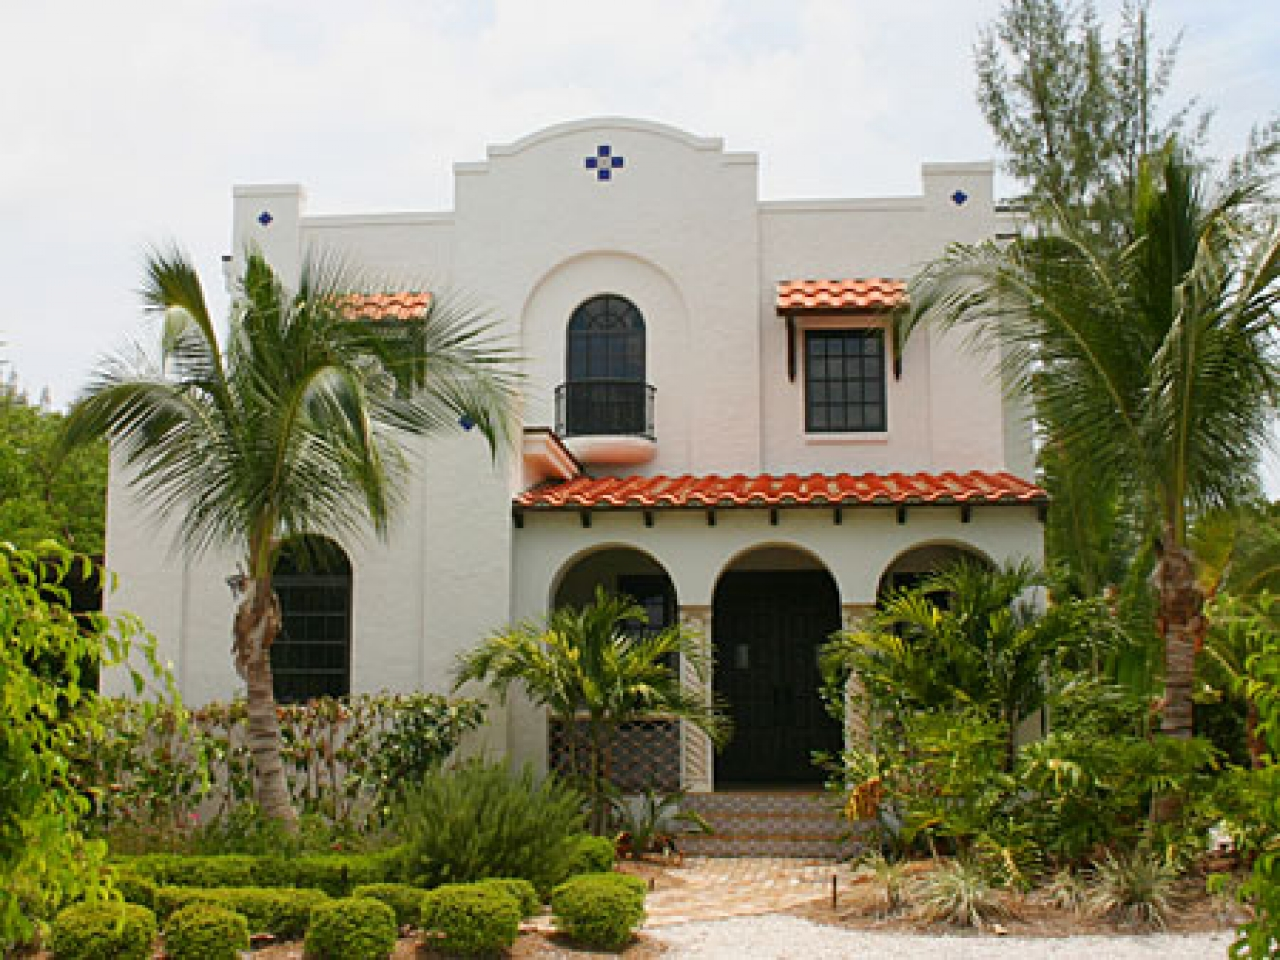 Bhhs select properties architectural styles st louis for Spanish eclectic architecture